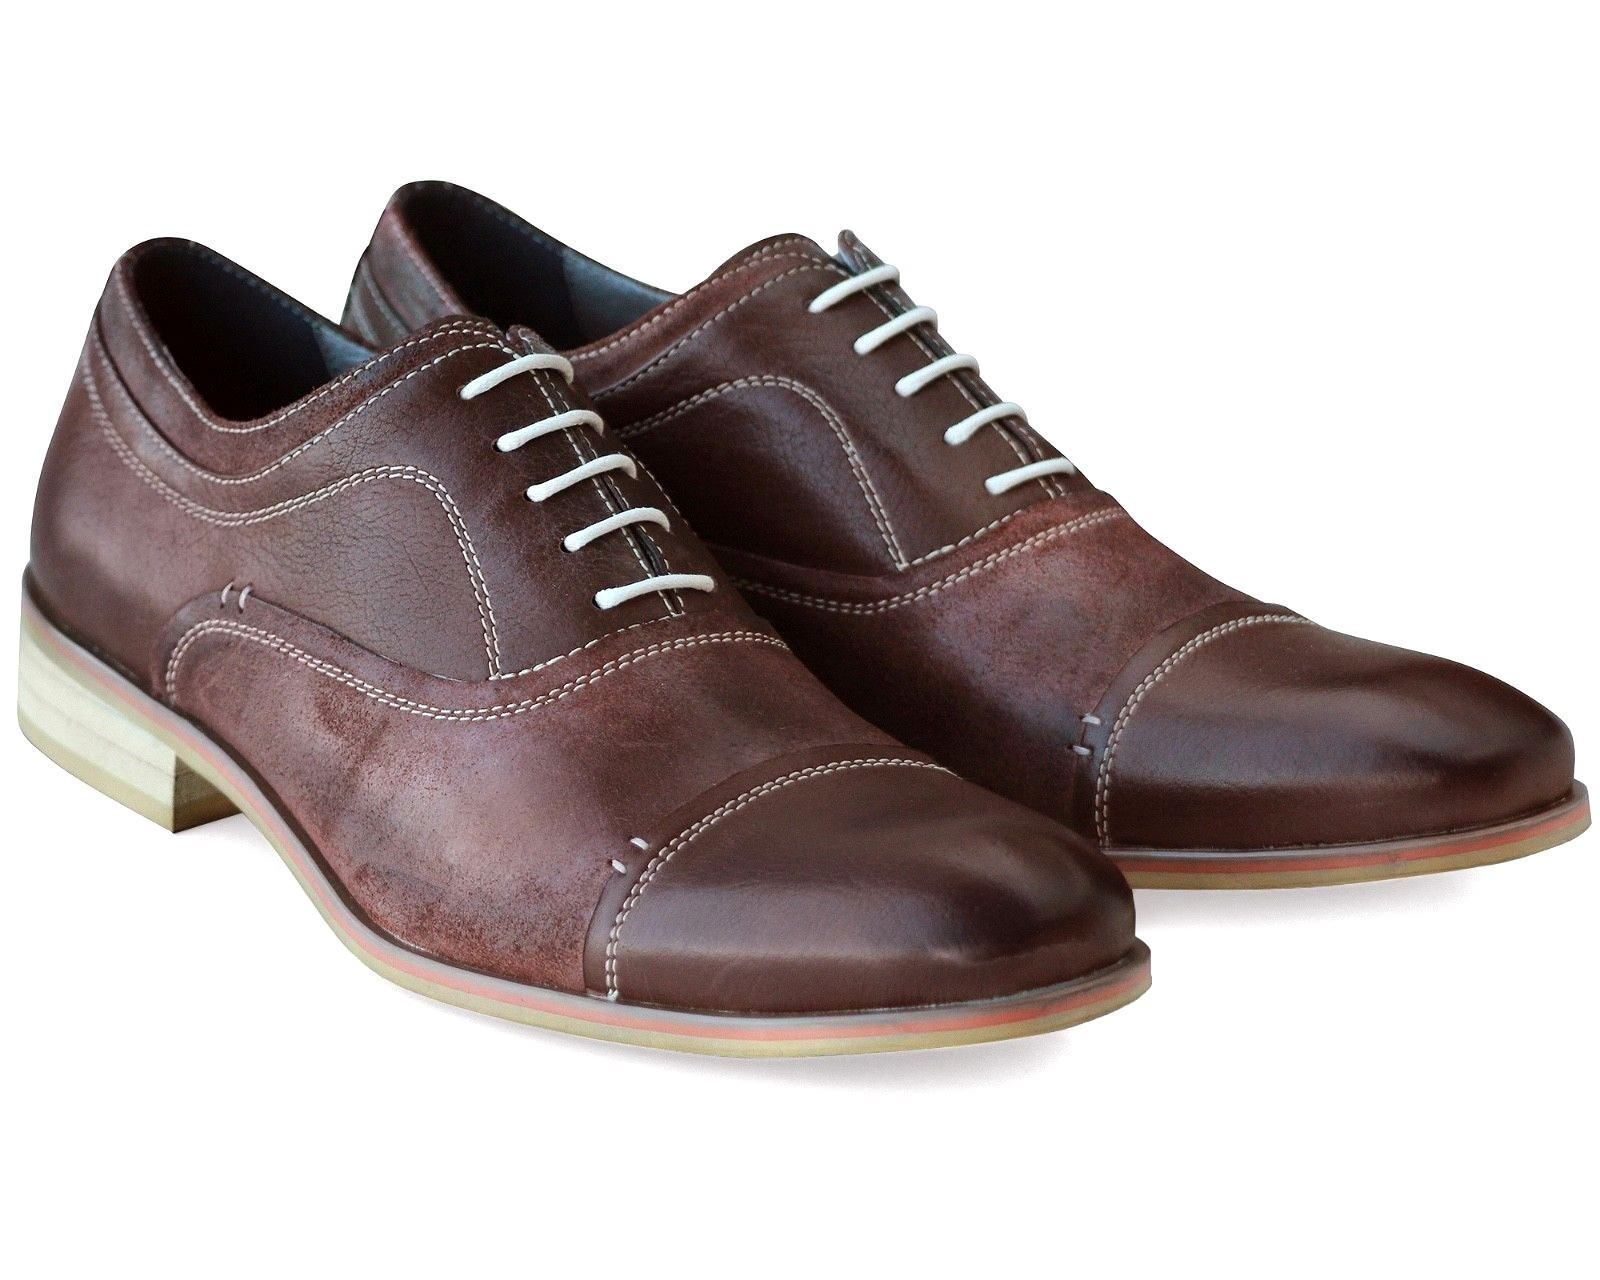 541 NEW MENS BROWN REAL LEATHER CASUAL SHOES COMFORT LACE UP WORK